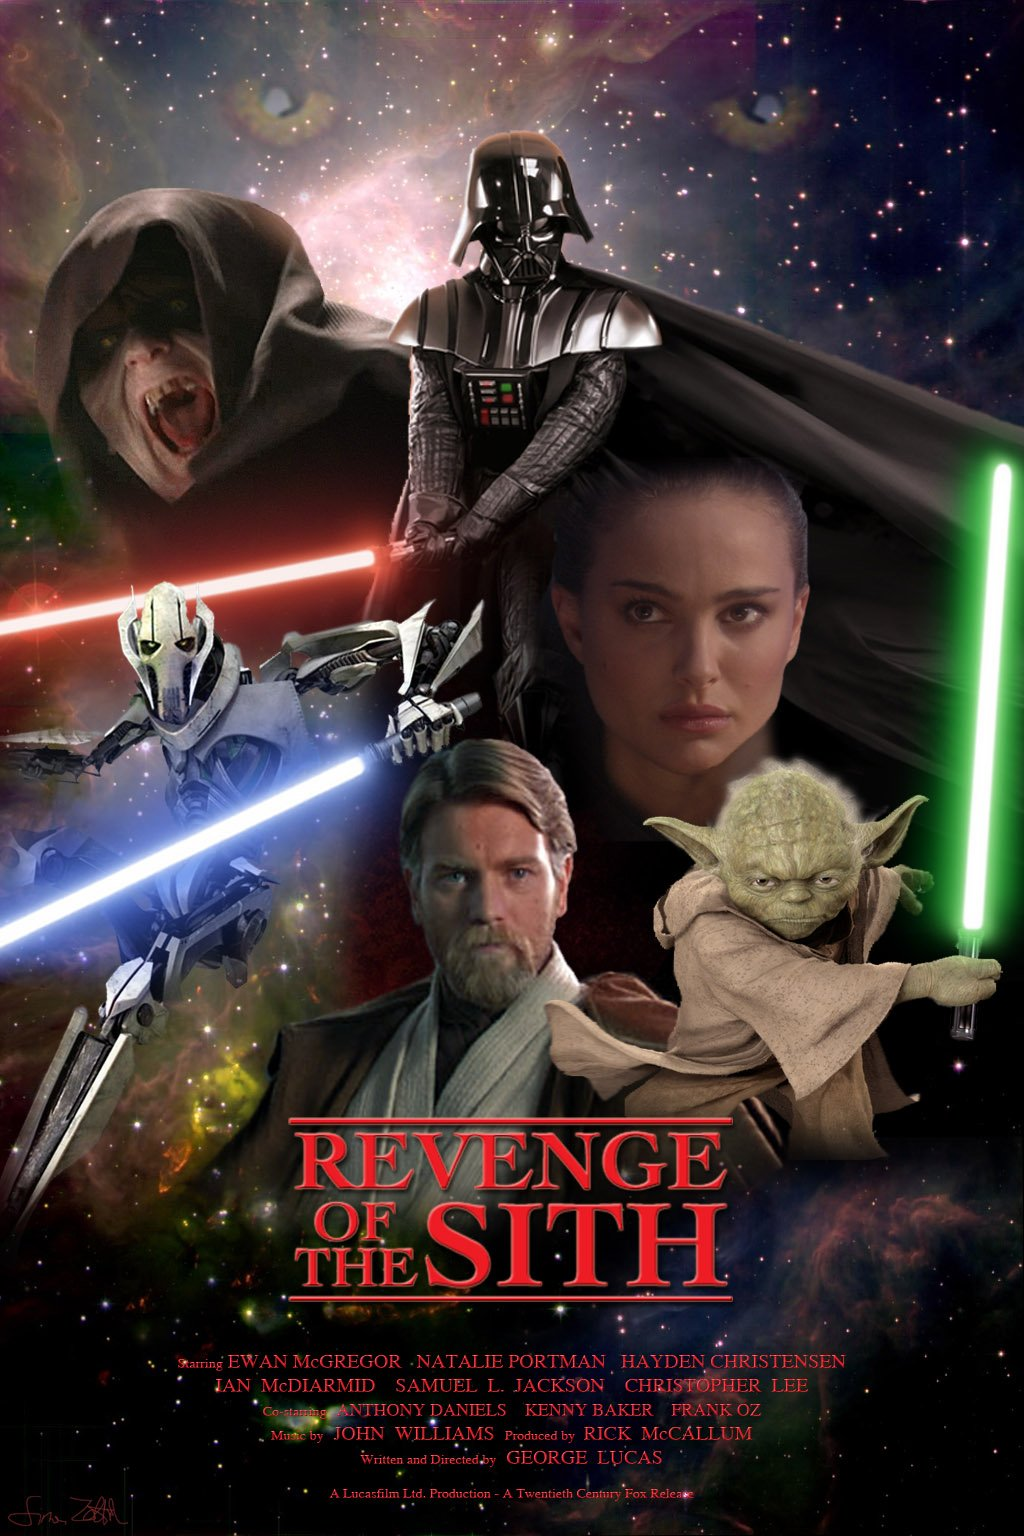 Star Wars Episode Iii Revenge Of The Sith Movie Posters Freemovieposters Net